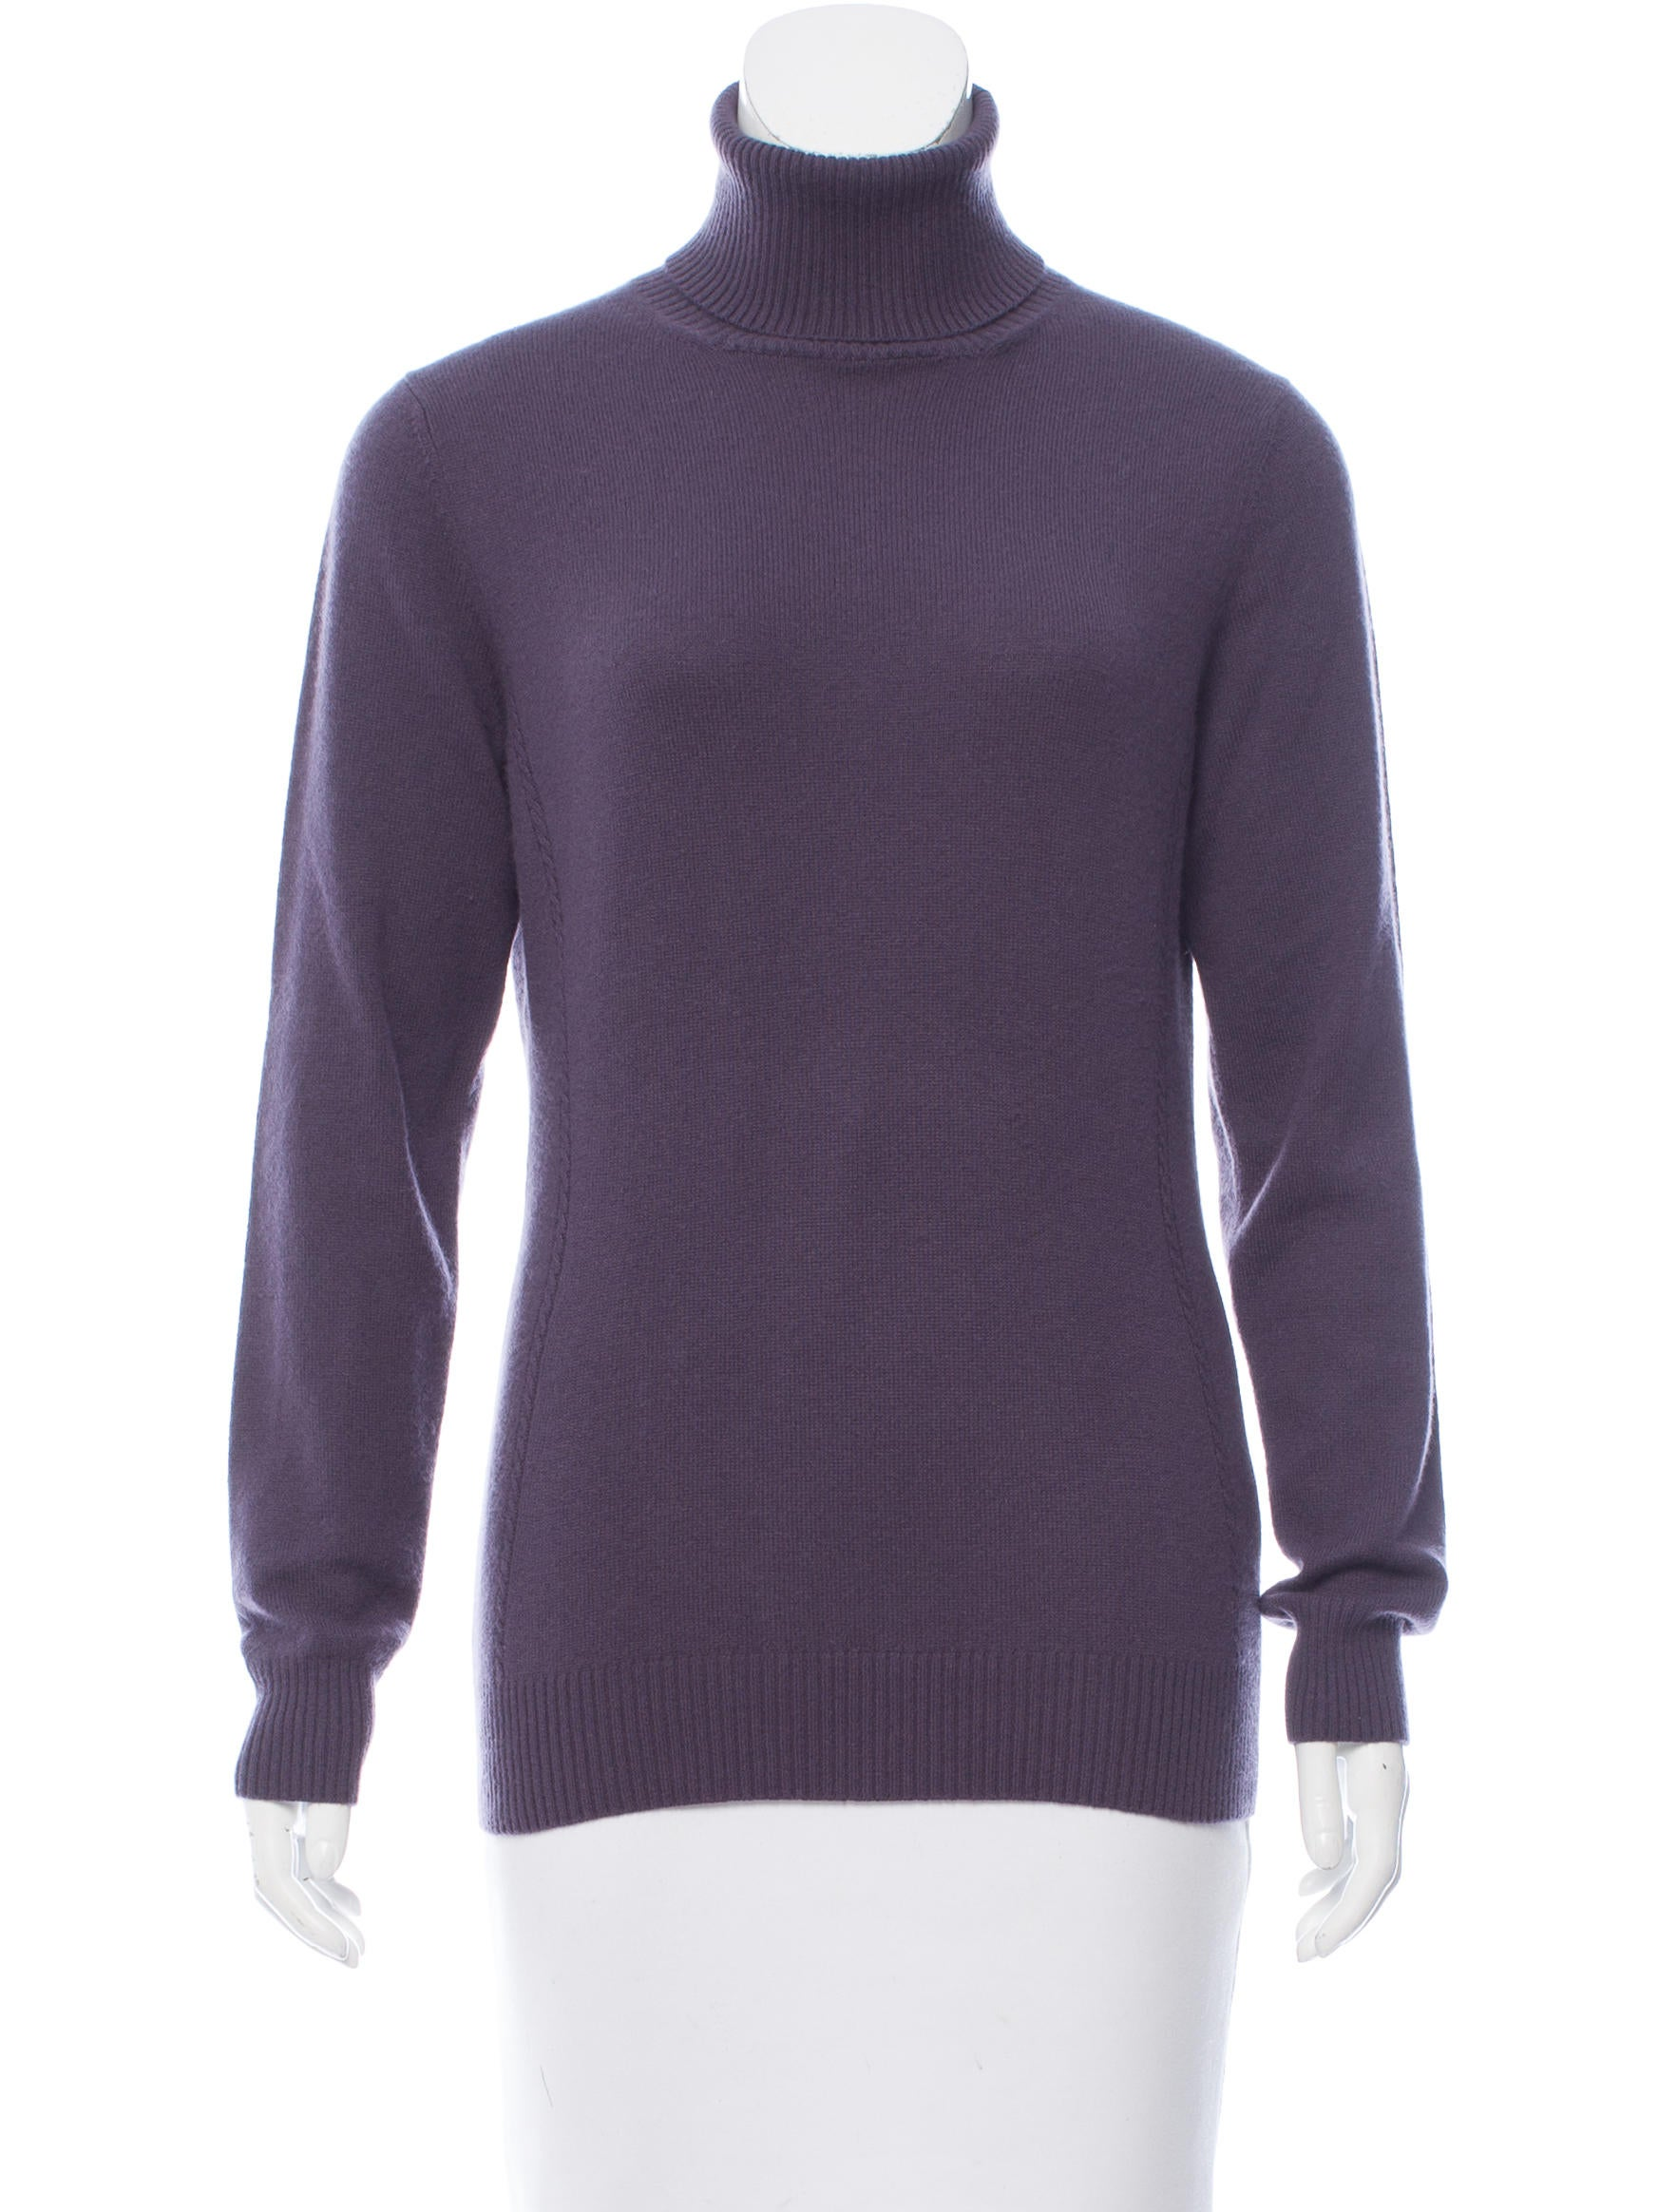 A Gap turtleneck is comfortable, warm and fashion forward. Our turtleneck styles are always popular and our selection includes a variety of styles including button-ups, cowl necks, zip-ups and more. Enjoy cozy turtleneck fashions in cotton, wool, cashmere, knit and more.